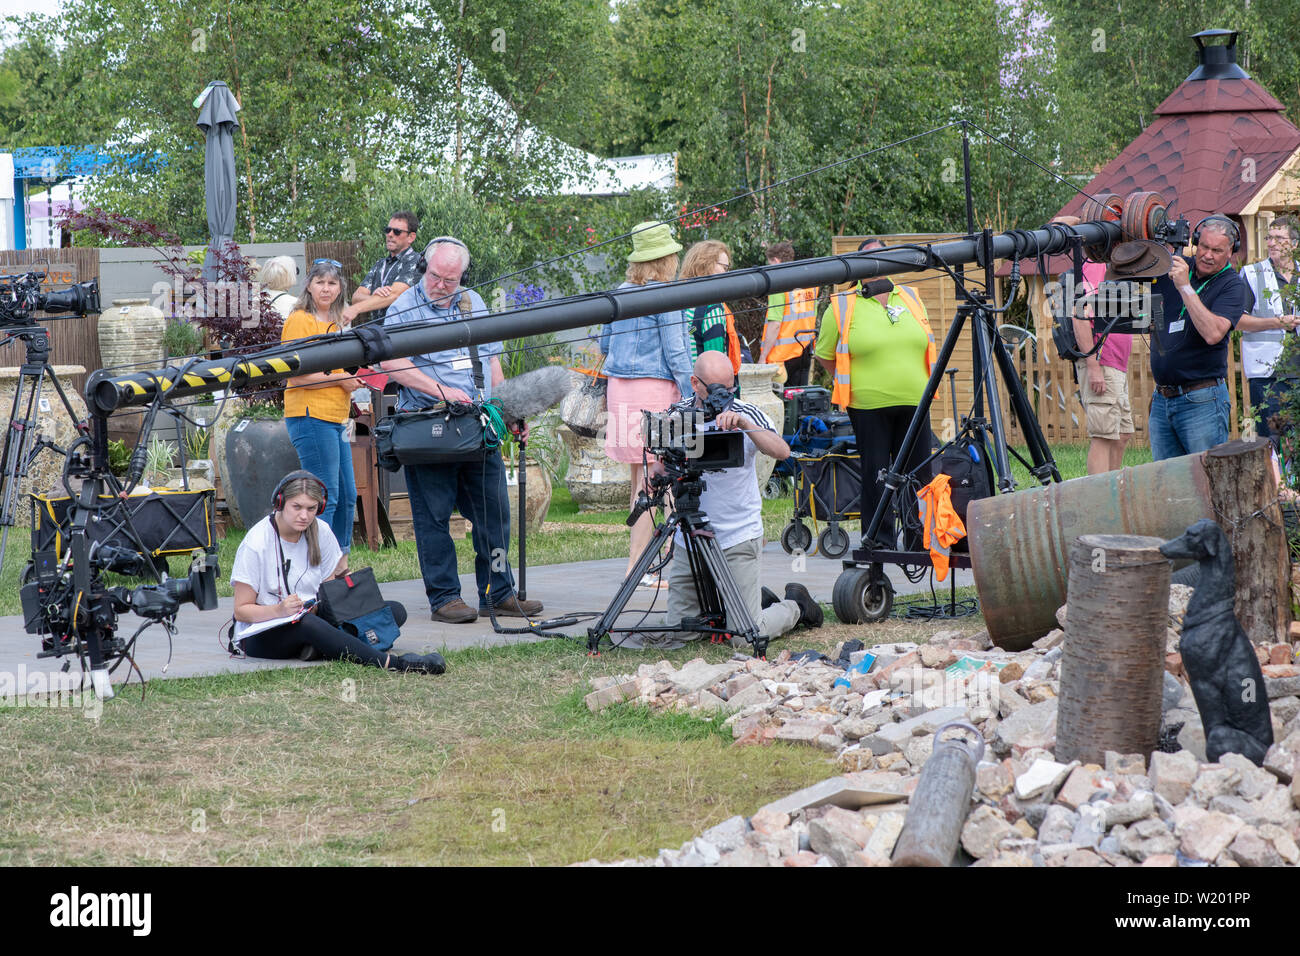 BBC Gardeners world film crew outside the calm against chaos show garden at RHS Hampton Court flower show 2019. Hampton Court Palace, Surrey, England - Stock Image